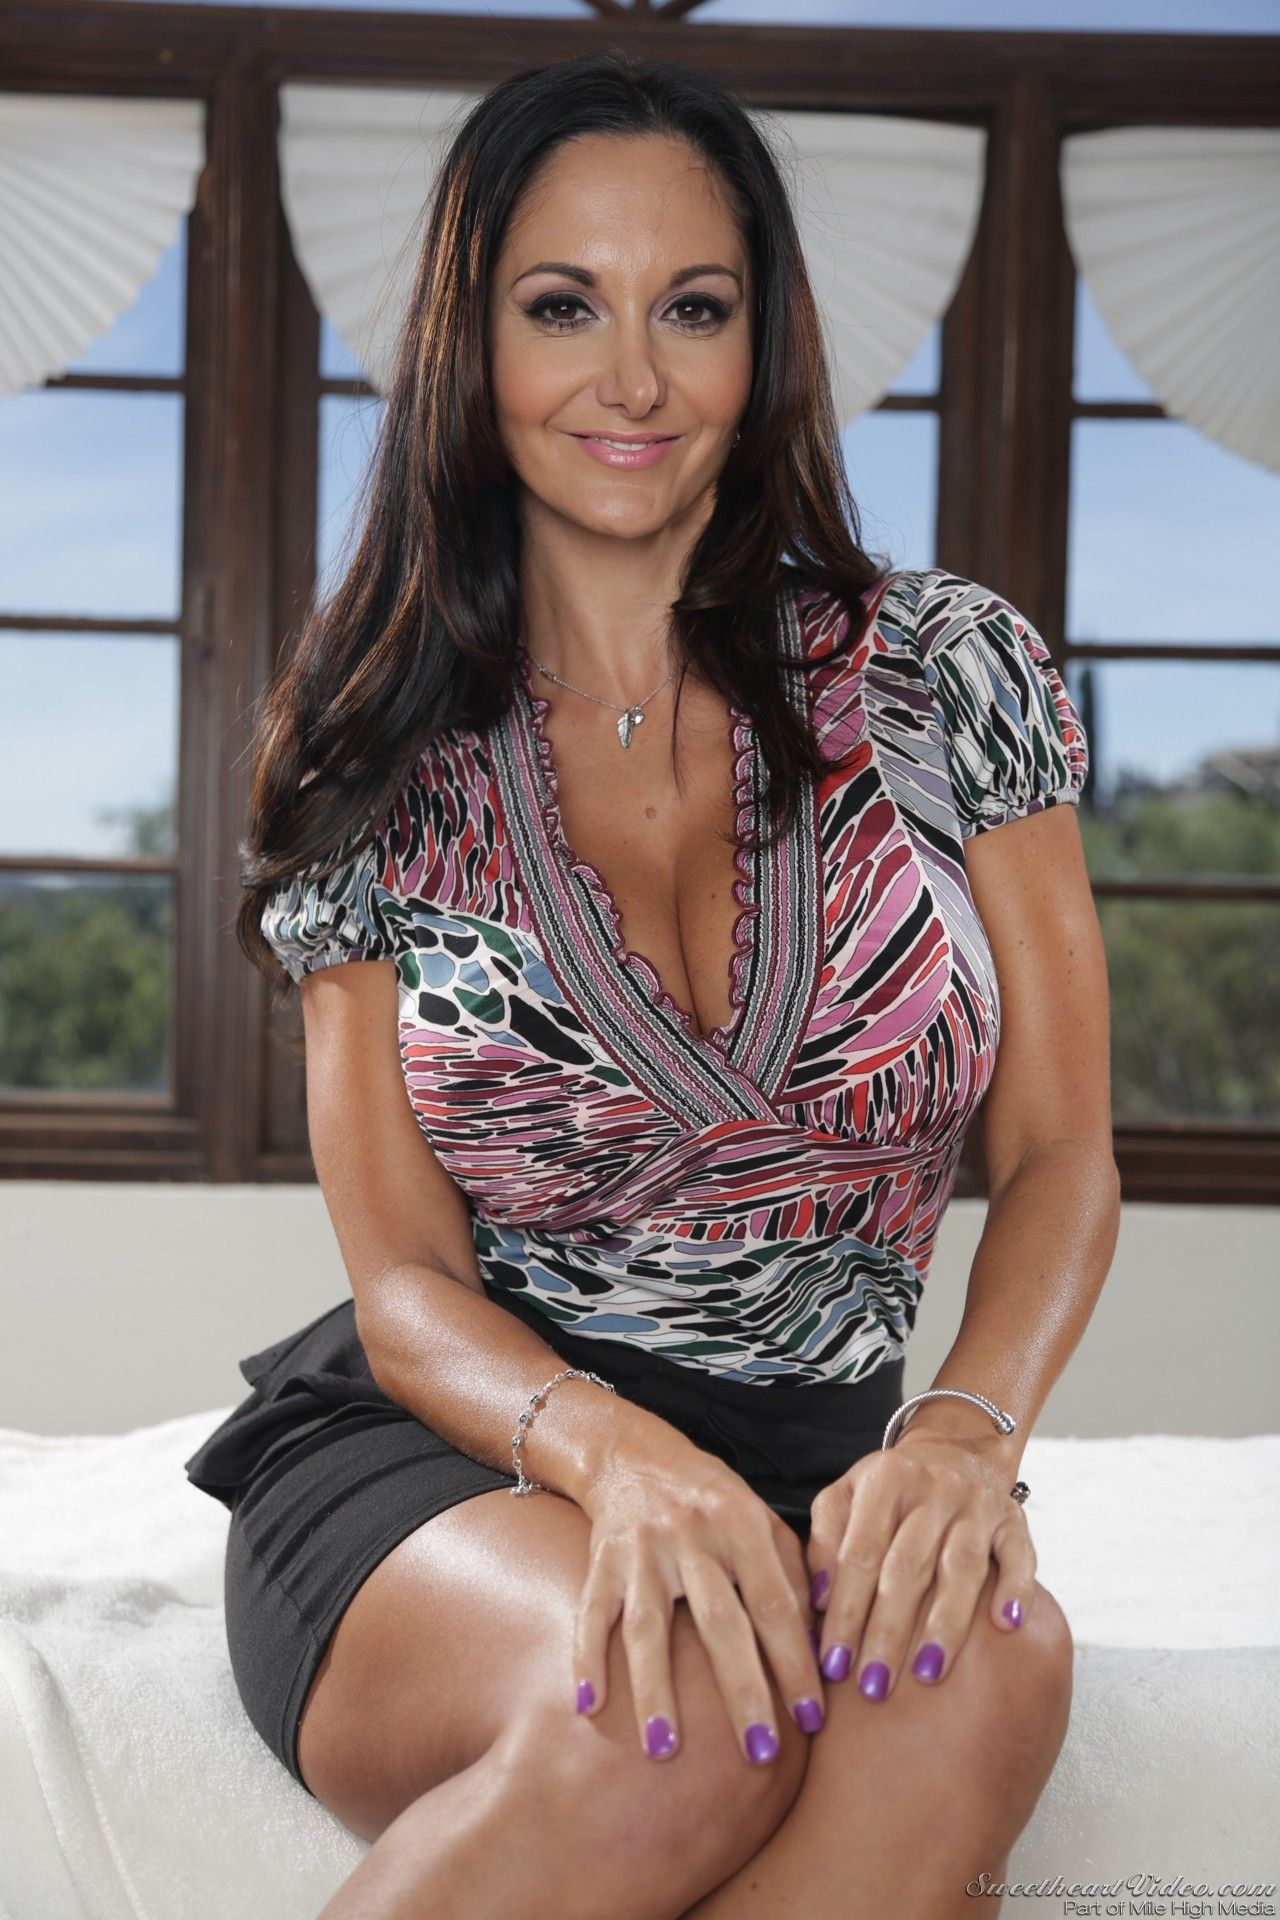 ava addams | adult stars 1 | pinterest | ava, boobs and business women